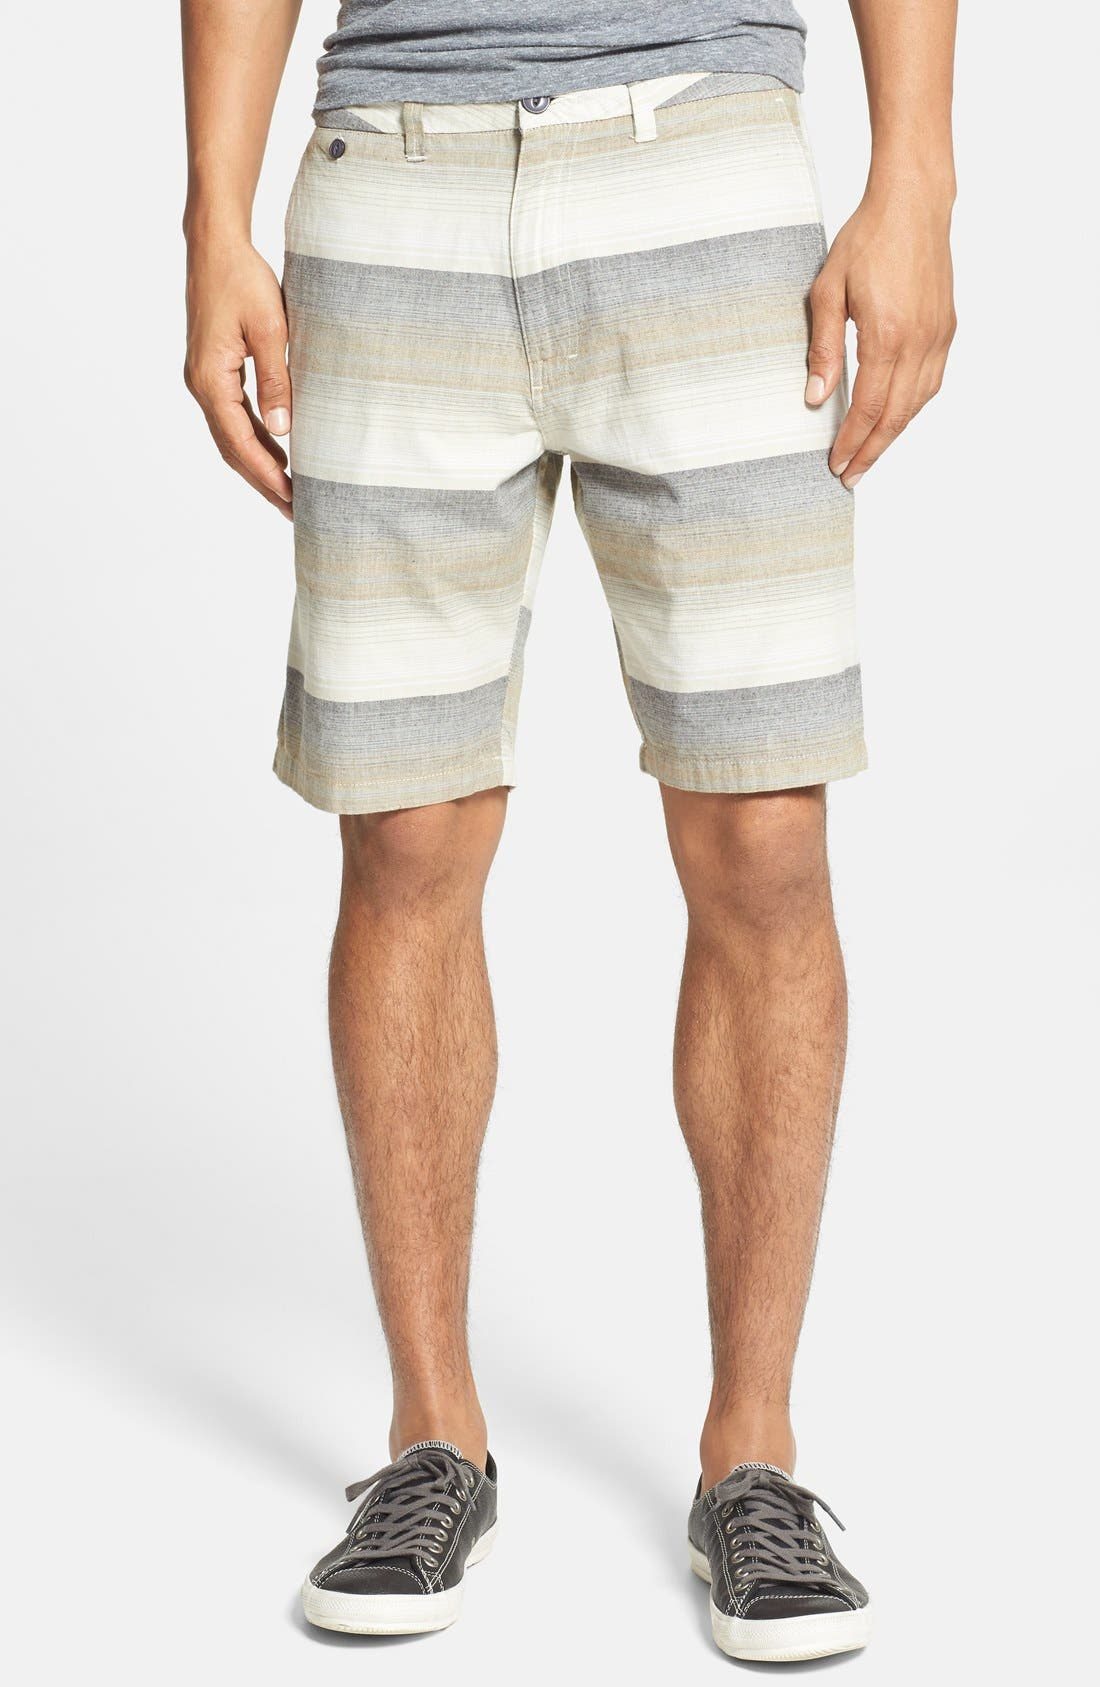 Alternate Image 1 Selected - O'Neill 'Compass' Print Cotton Shorts